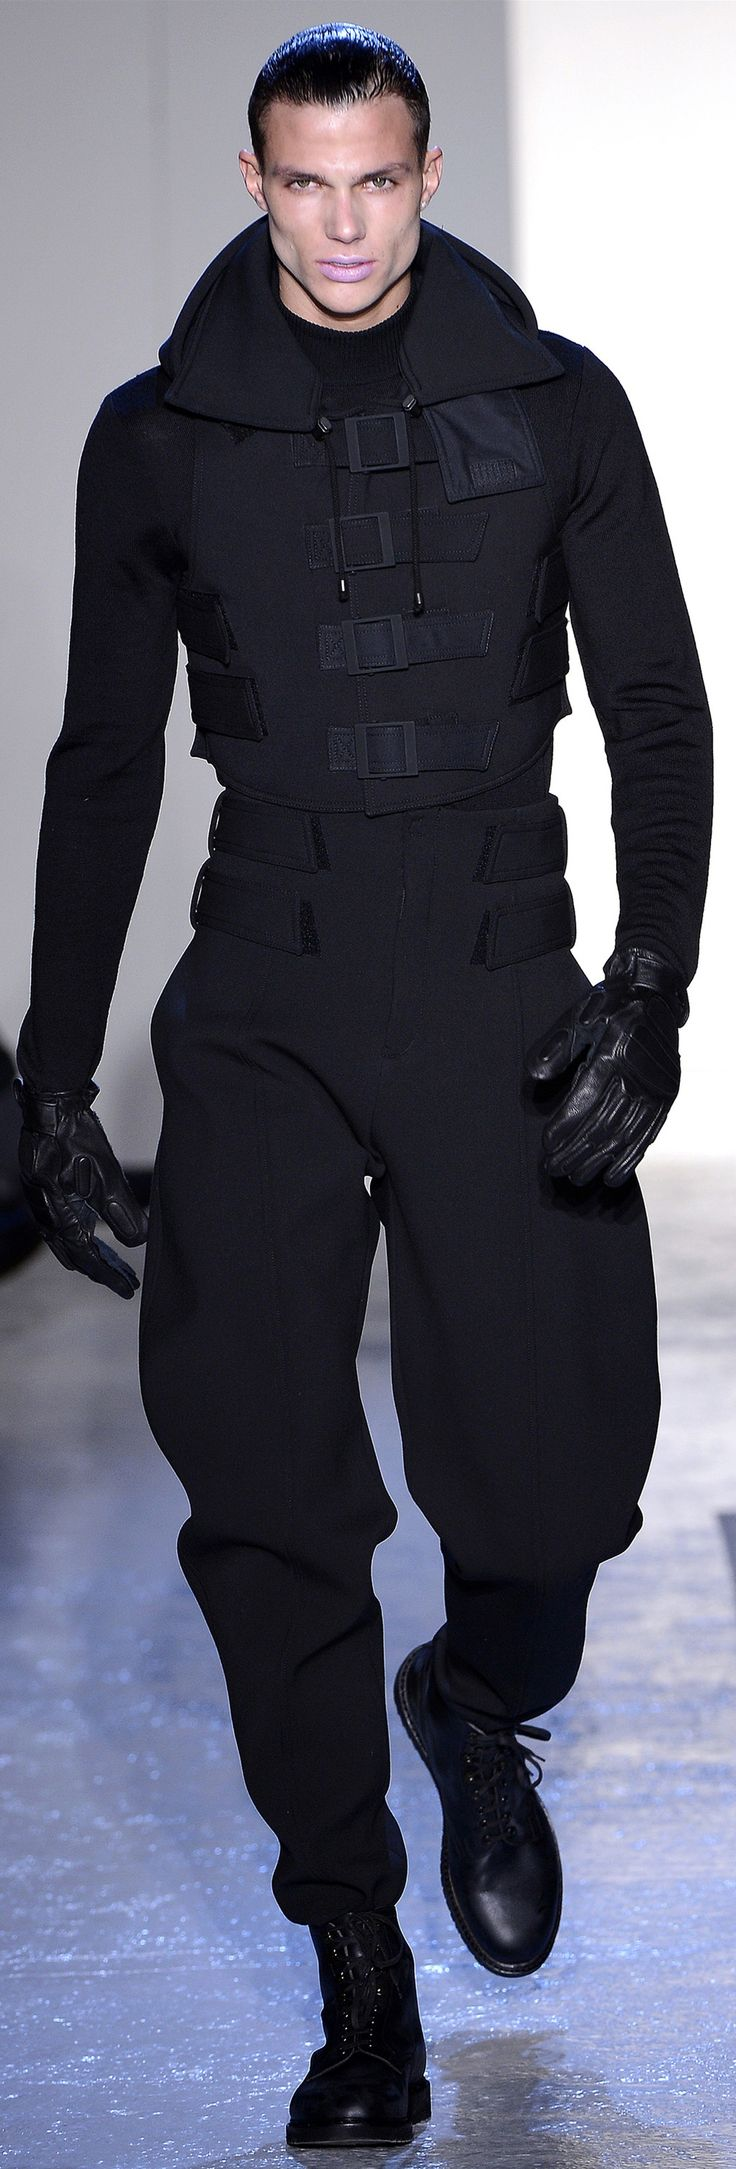 Dark Fashion, Cyberpunk Fashion by Thierry Mugler (3), future fashion, future clothes,